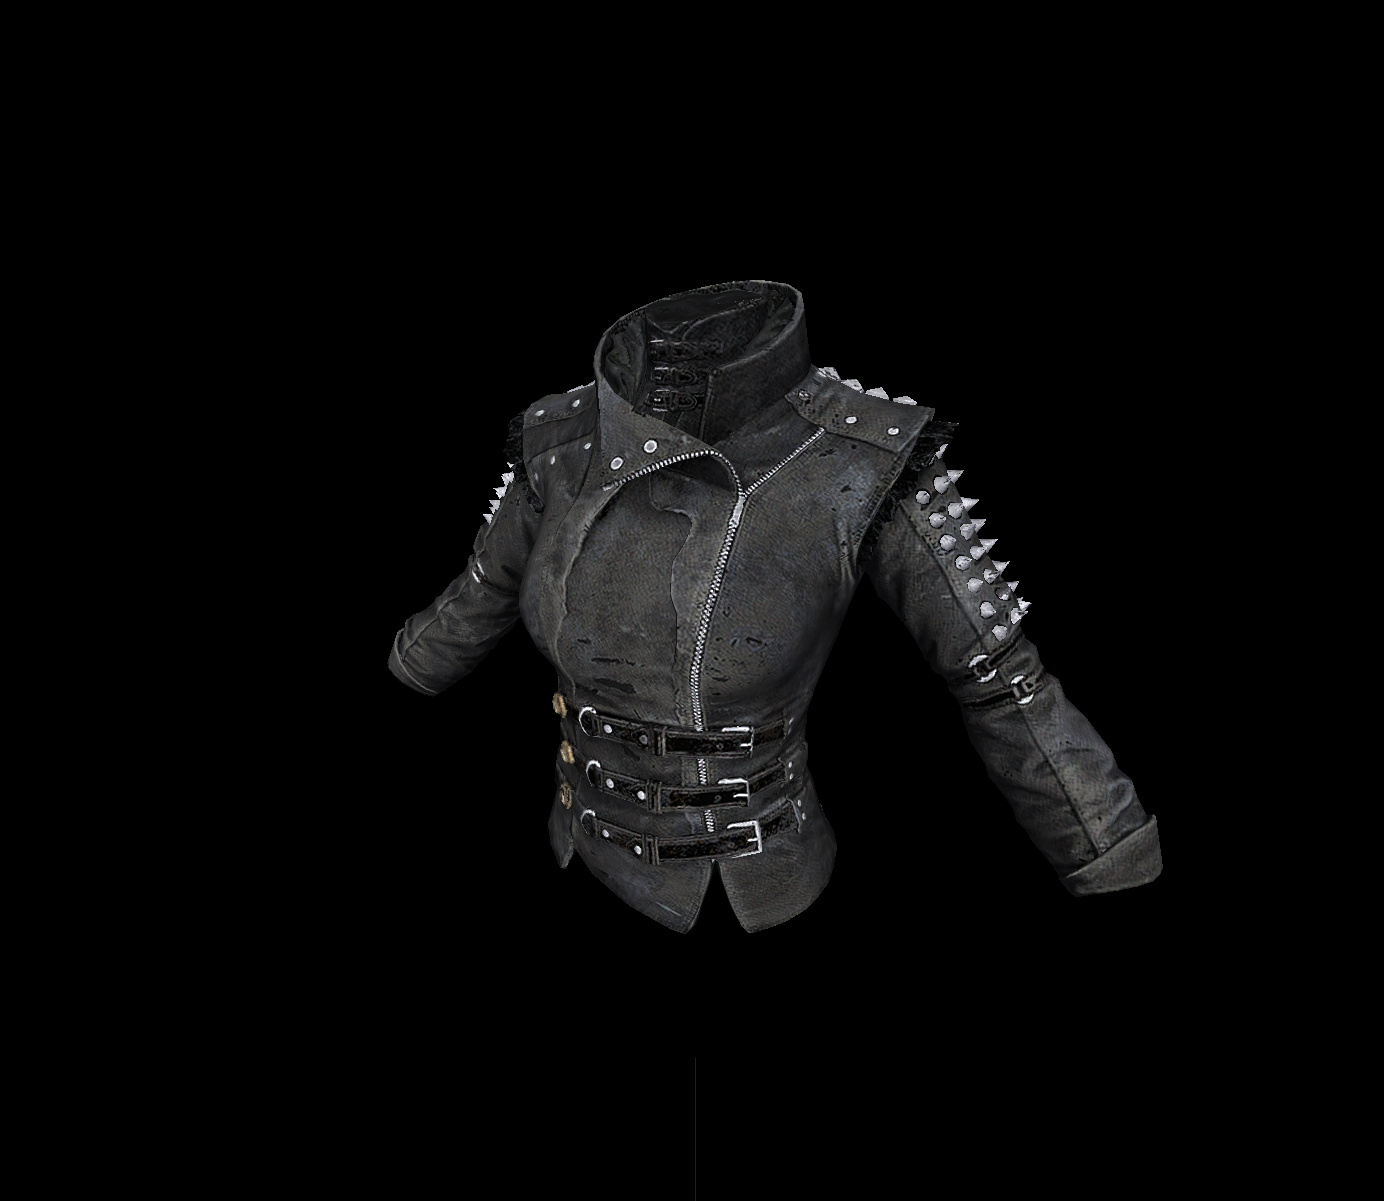 PUBG Week 15 Patch Datamined: Full Body Armor And 50